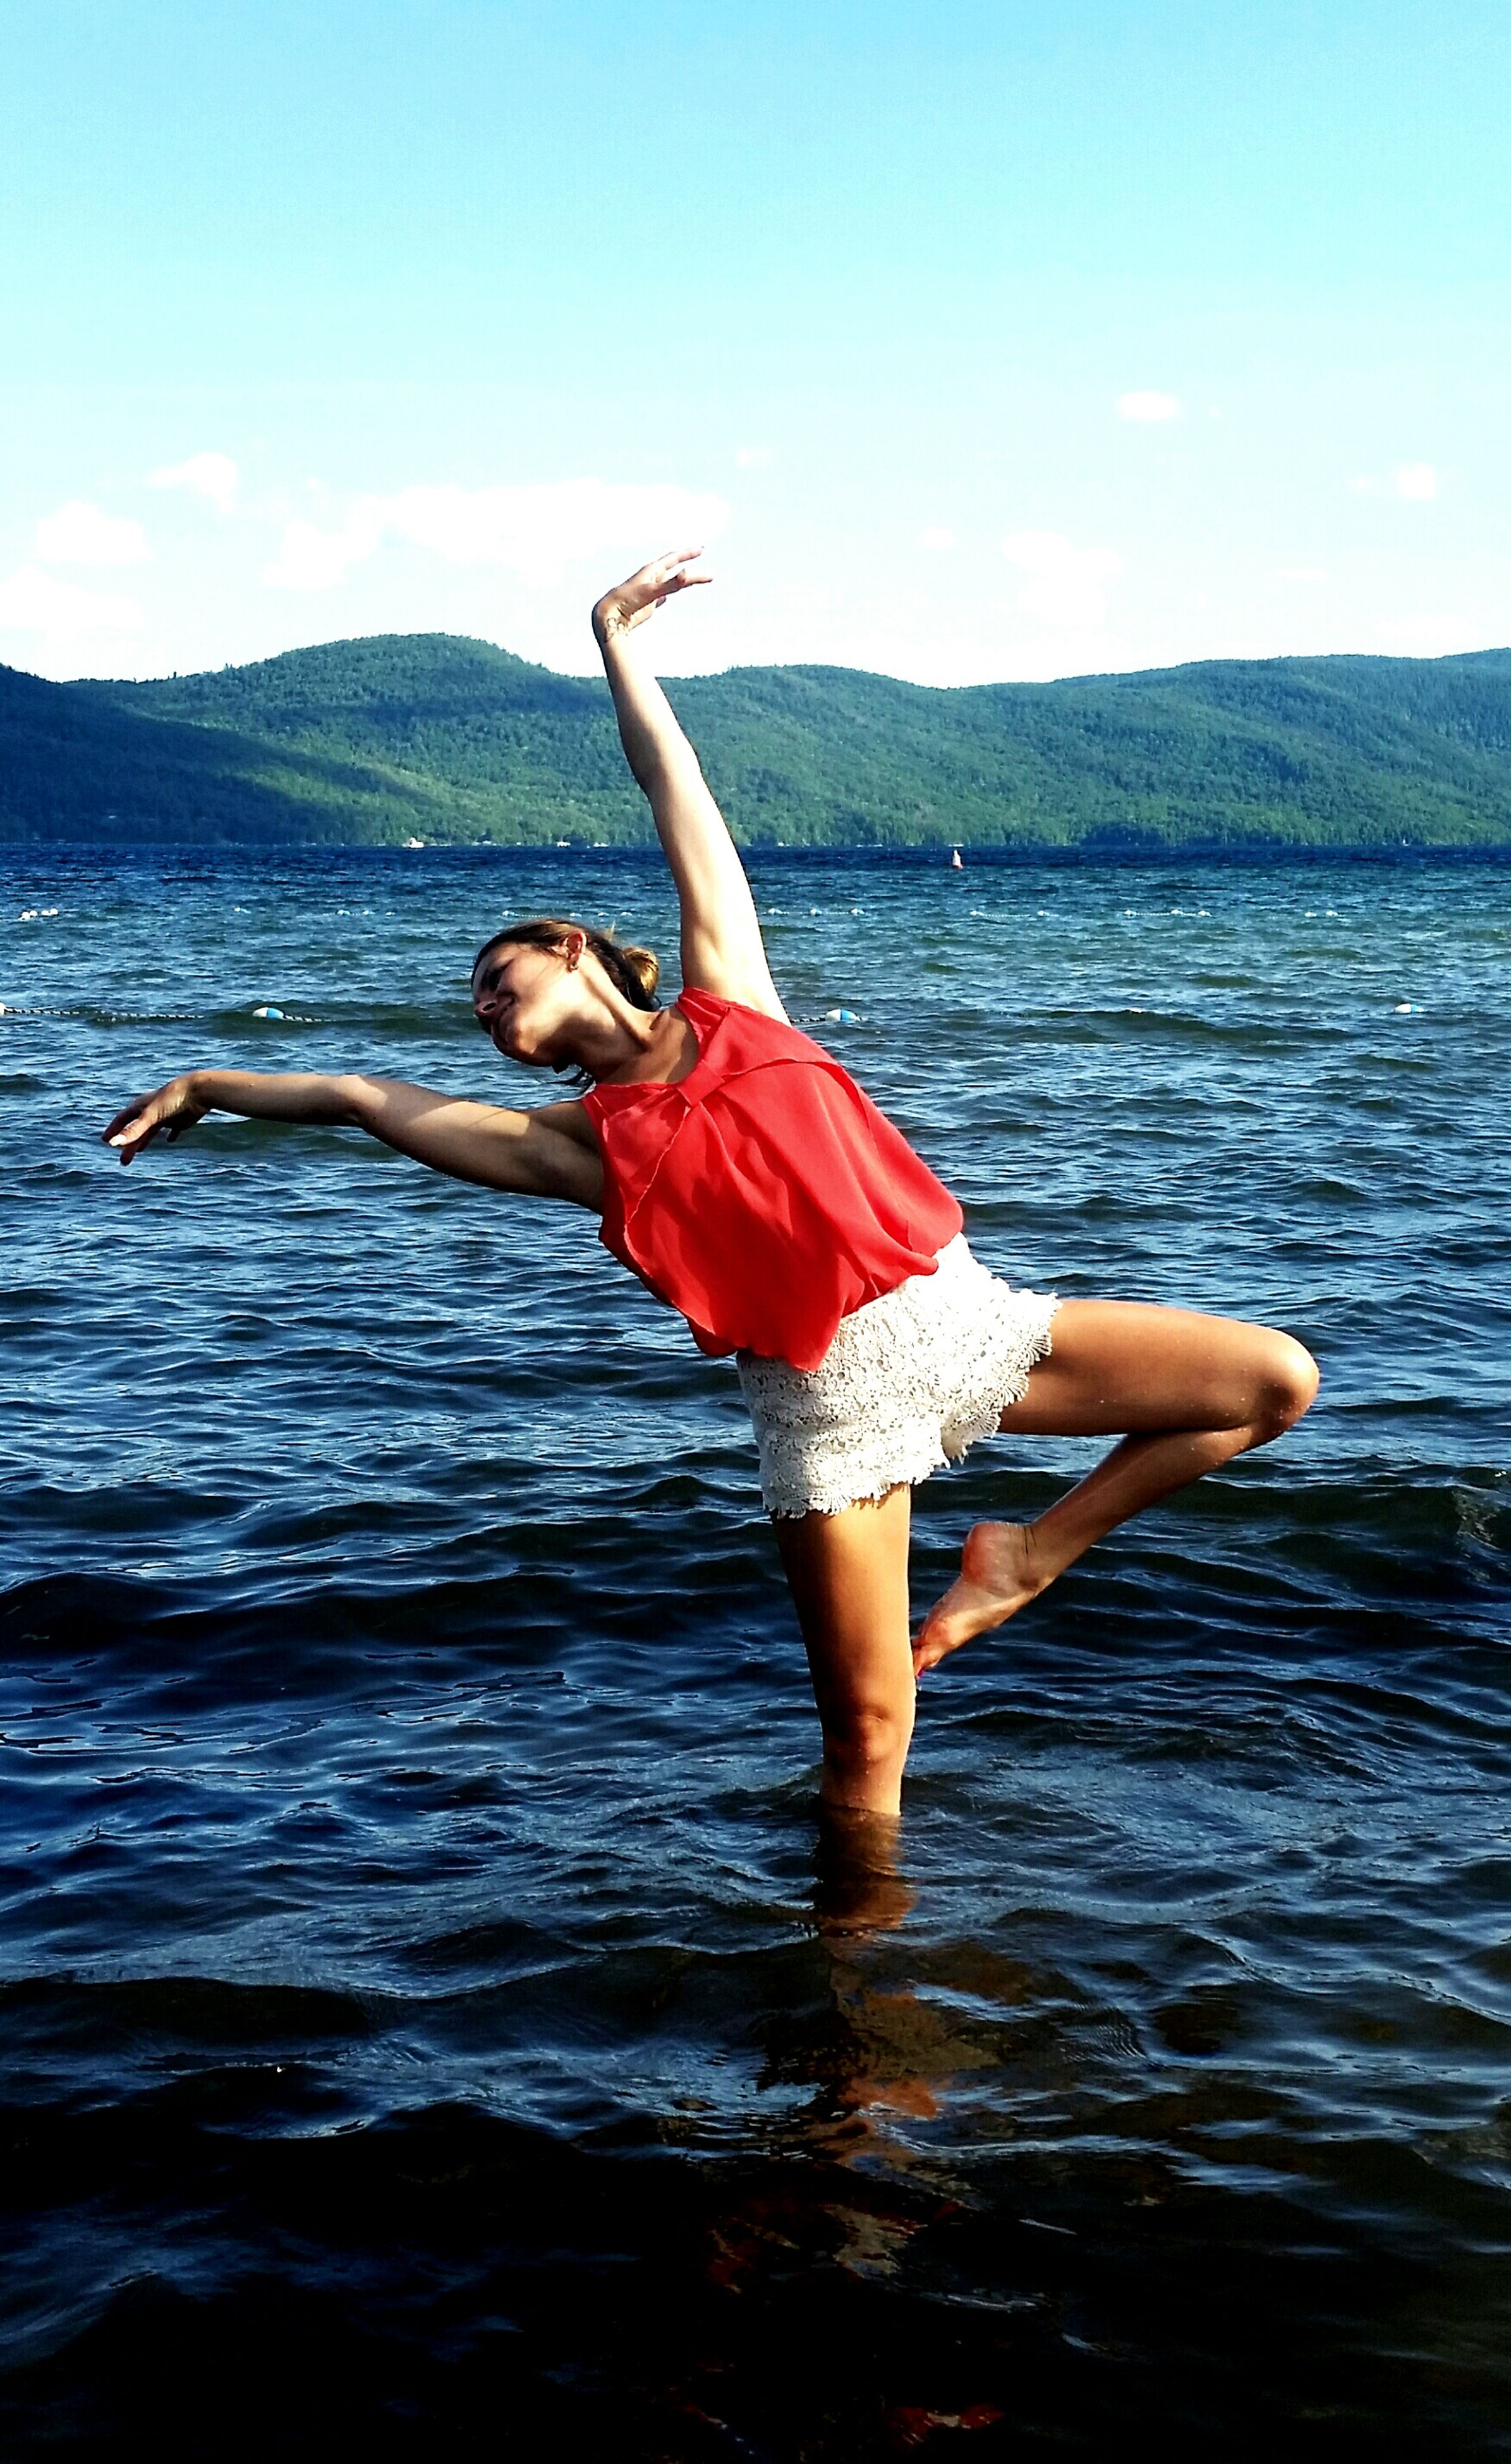 full length, water, arms outstretched, jumping, leisure activity, lifestyles, arms raised, mid-air, enjoyment, sea, young adult, freedom, carefree, fun, casual clothing, person, sky, standing